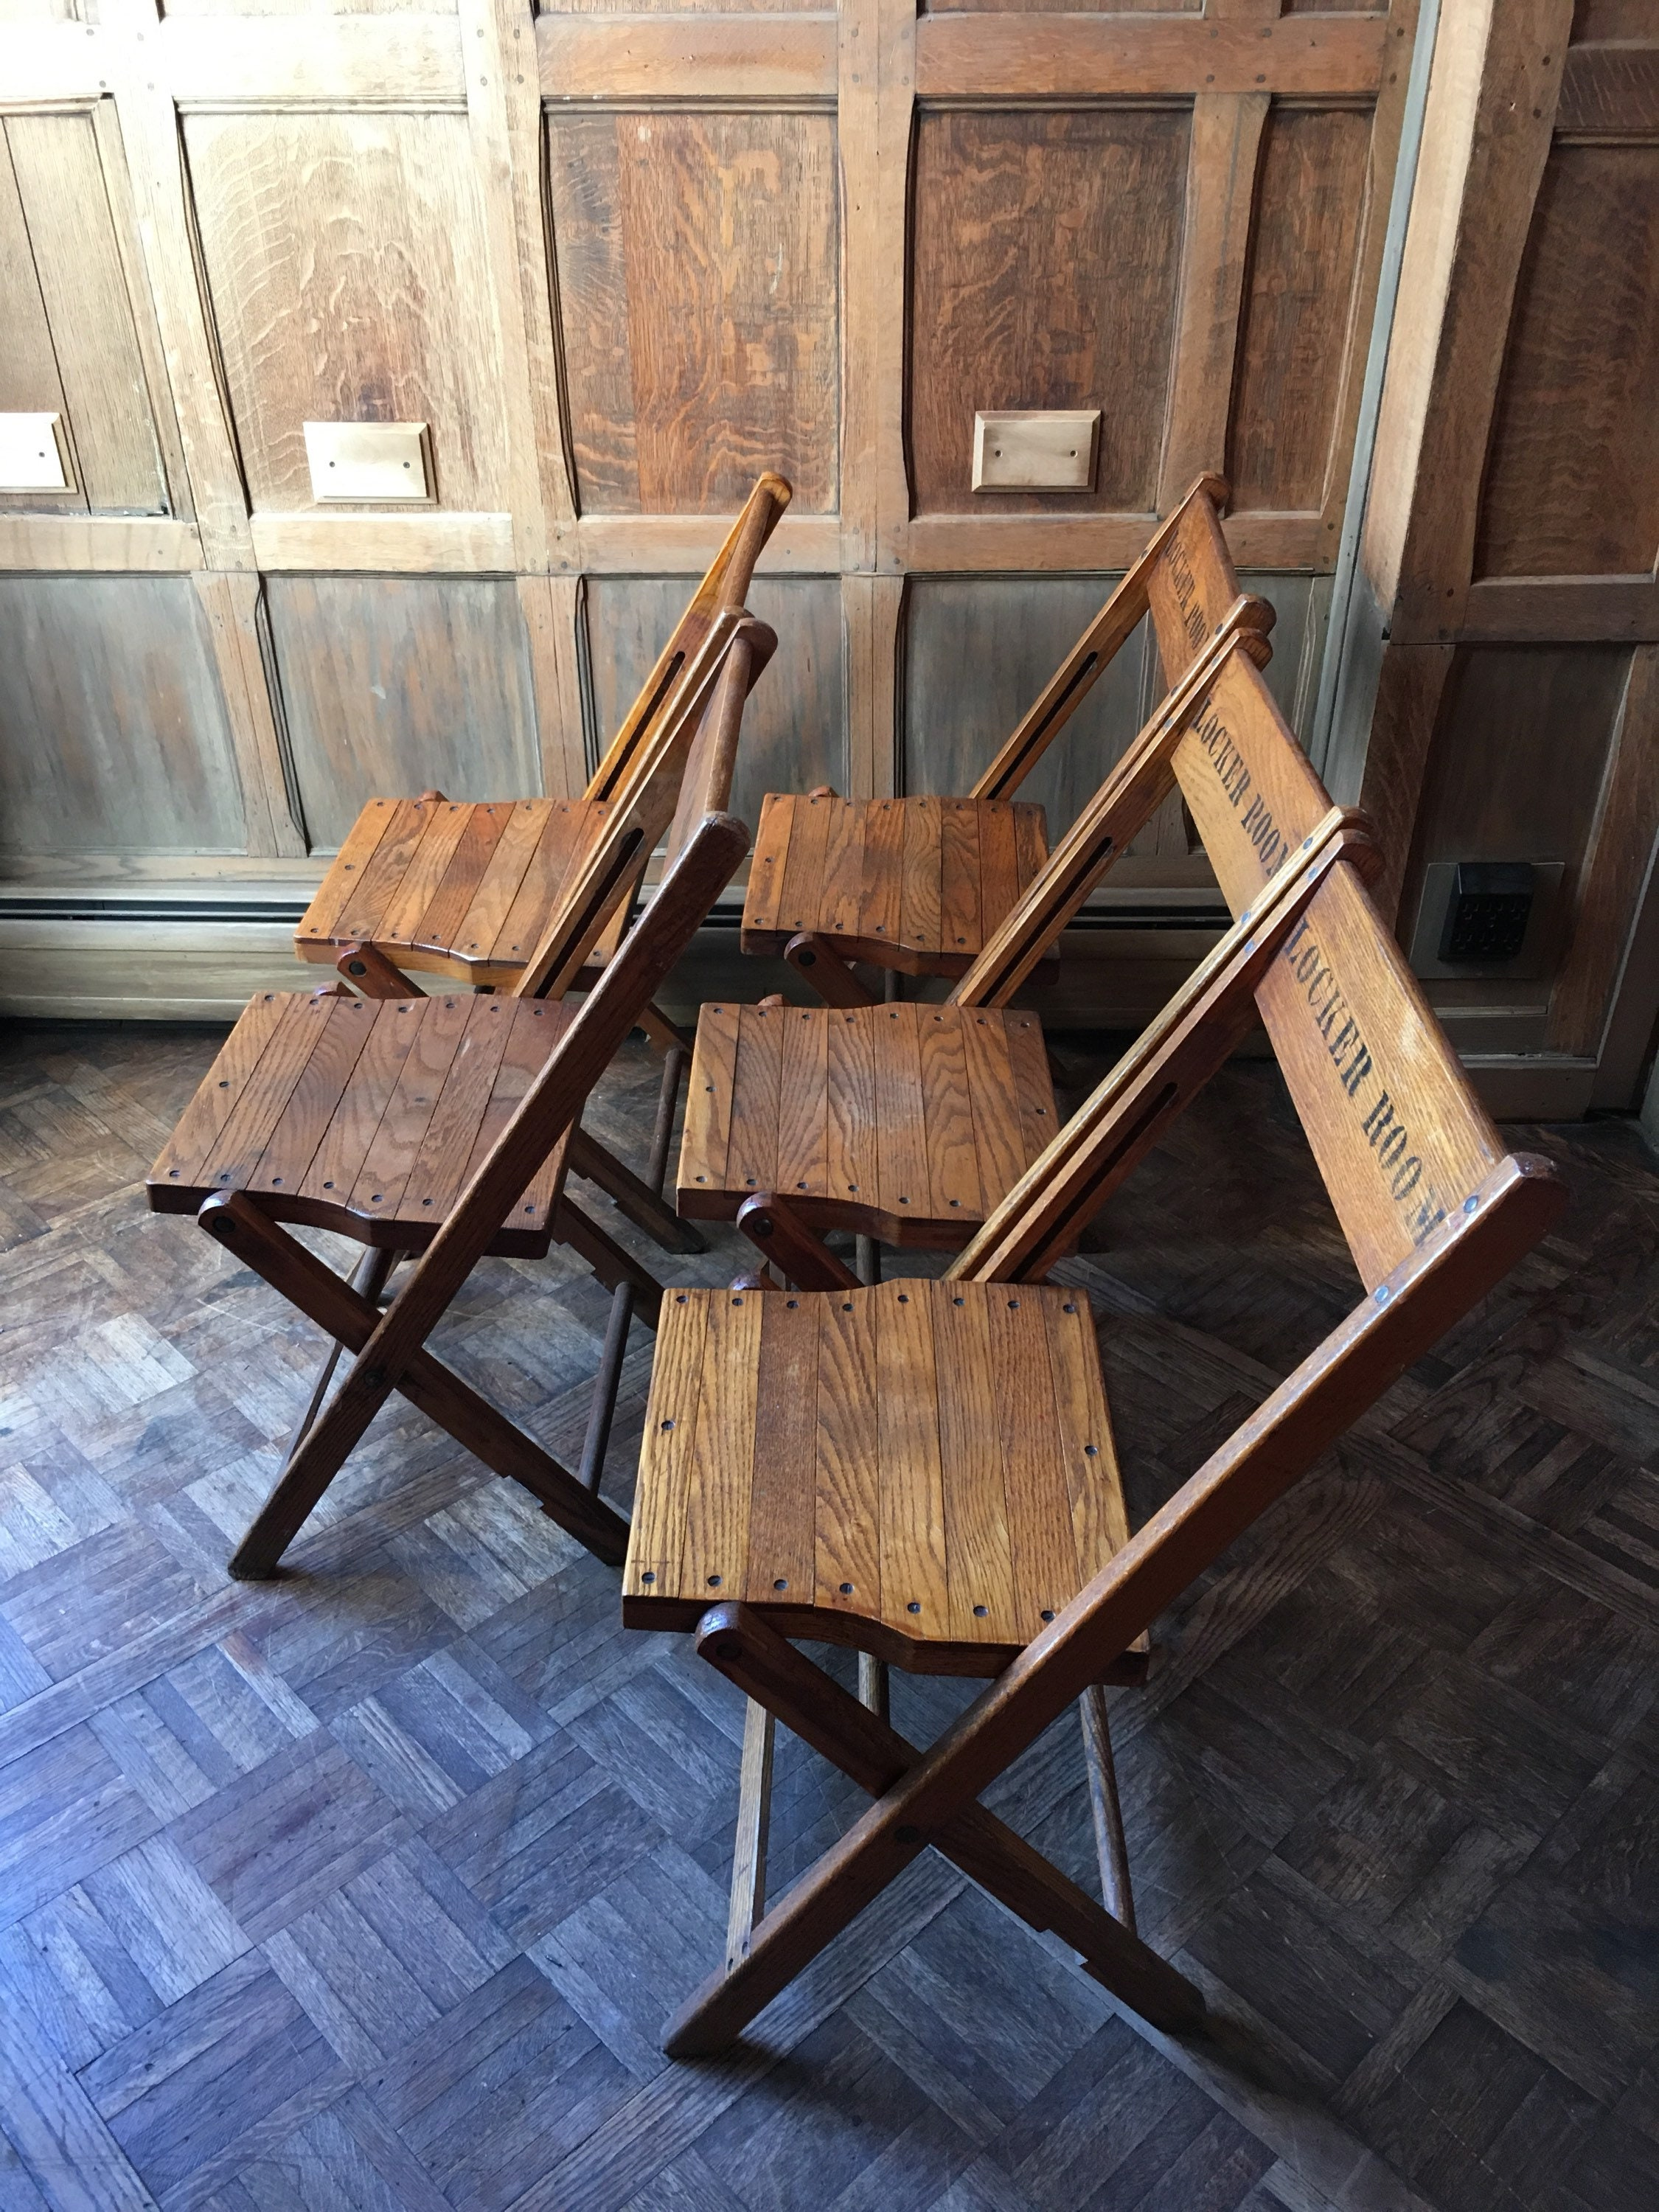 Enjoyable Vintage Locker Room Folding Chairs Set Of 5 Wood Folding Lamtechconsult Wood Chair Design Ideas Lamtechconsultcom